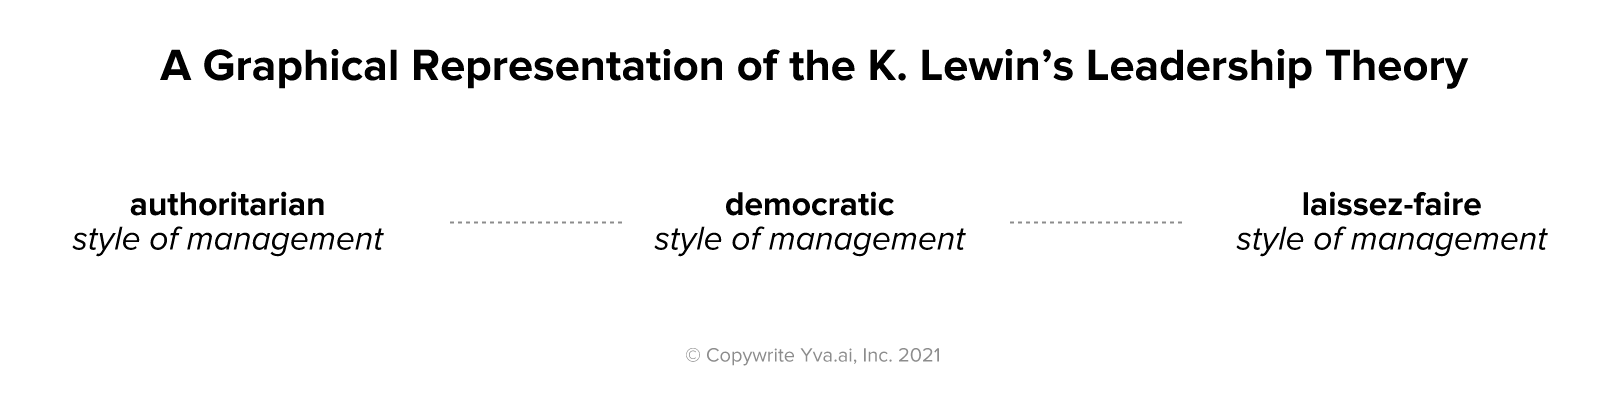 A Graphical Representation of the K. Lewin's Leadership Theory | Yva.ai